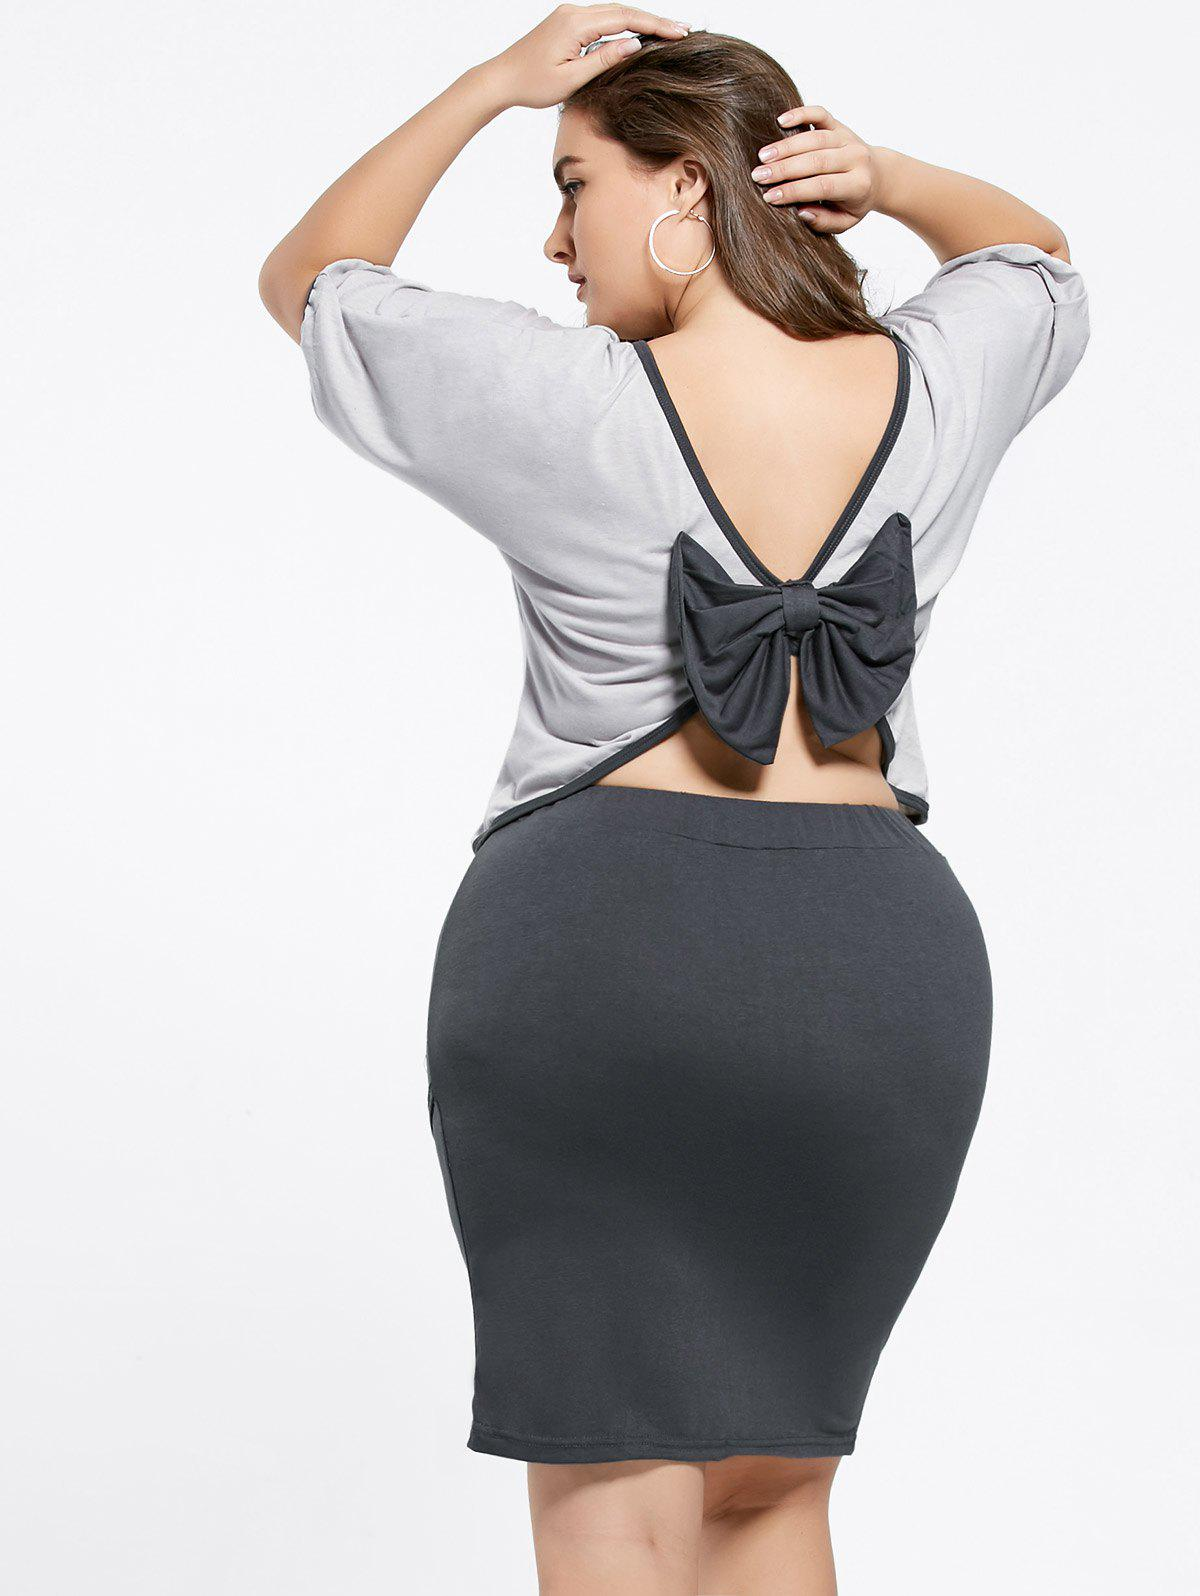 Sweet 3/4 Sleeve Backless Bowknot T-Shirt+Plus Size Skirt Twinset For WomenWOMEN<br><br>Size: 3XL; Color: BLACK AND GREY; Style: Cute; Material: Polyester; Silhouette: Sheath; Dresses Length: Knee-Length; Neckline: Scoop Neck; Sleeve Length: 3/4 Length Sleeves; Embellishment: Bowknot; Pattern Type: Others; With Belt: No; Season: Summer; Weight: 0.4400kg; Package Contents: 1 x T-Shirt   1 x Skirt;